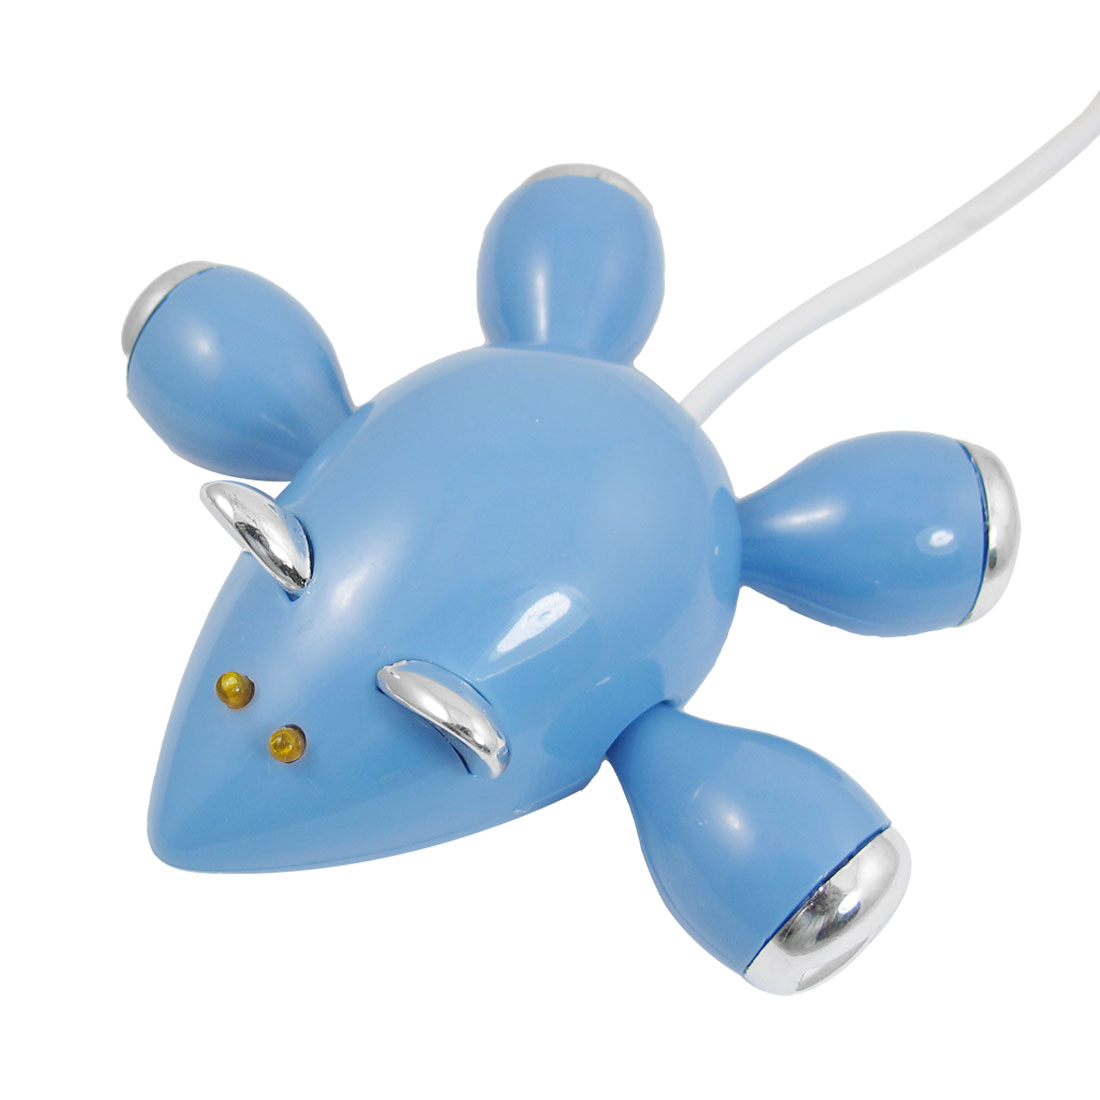 Blue Mouselet 4 Ports High-Speed USB 2.0 Hub Splitter Cable Adapter